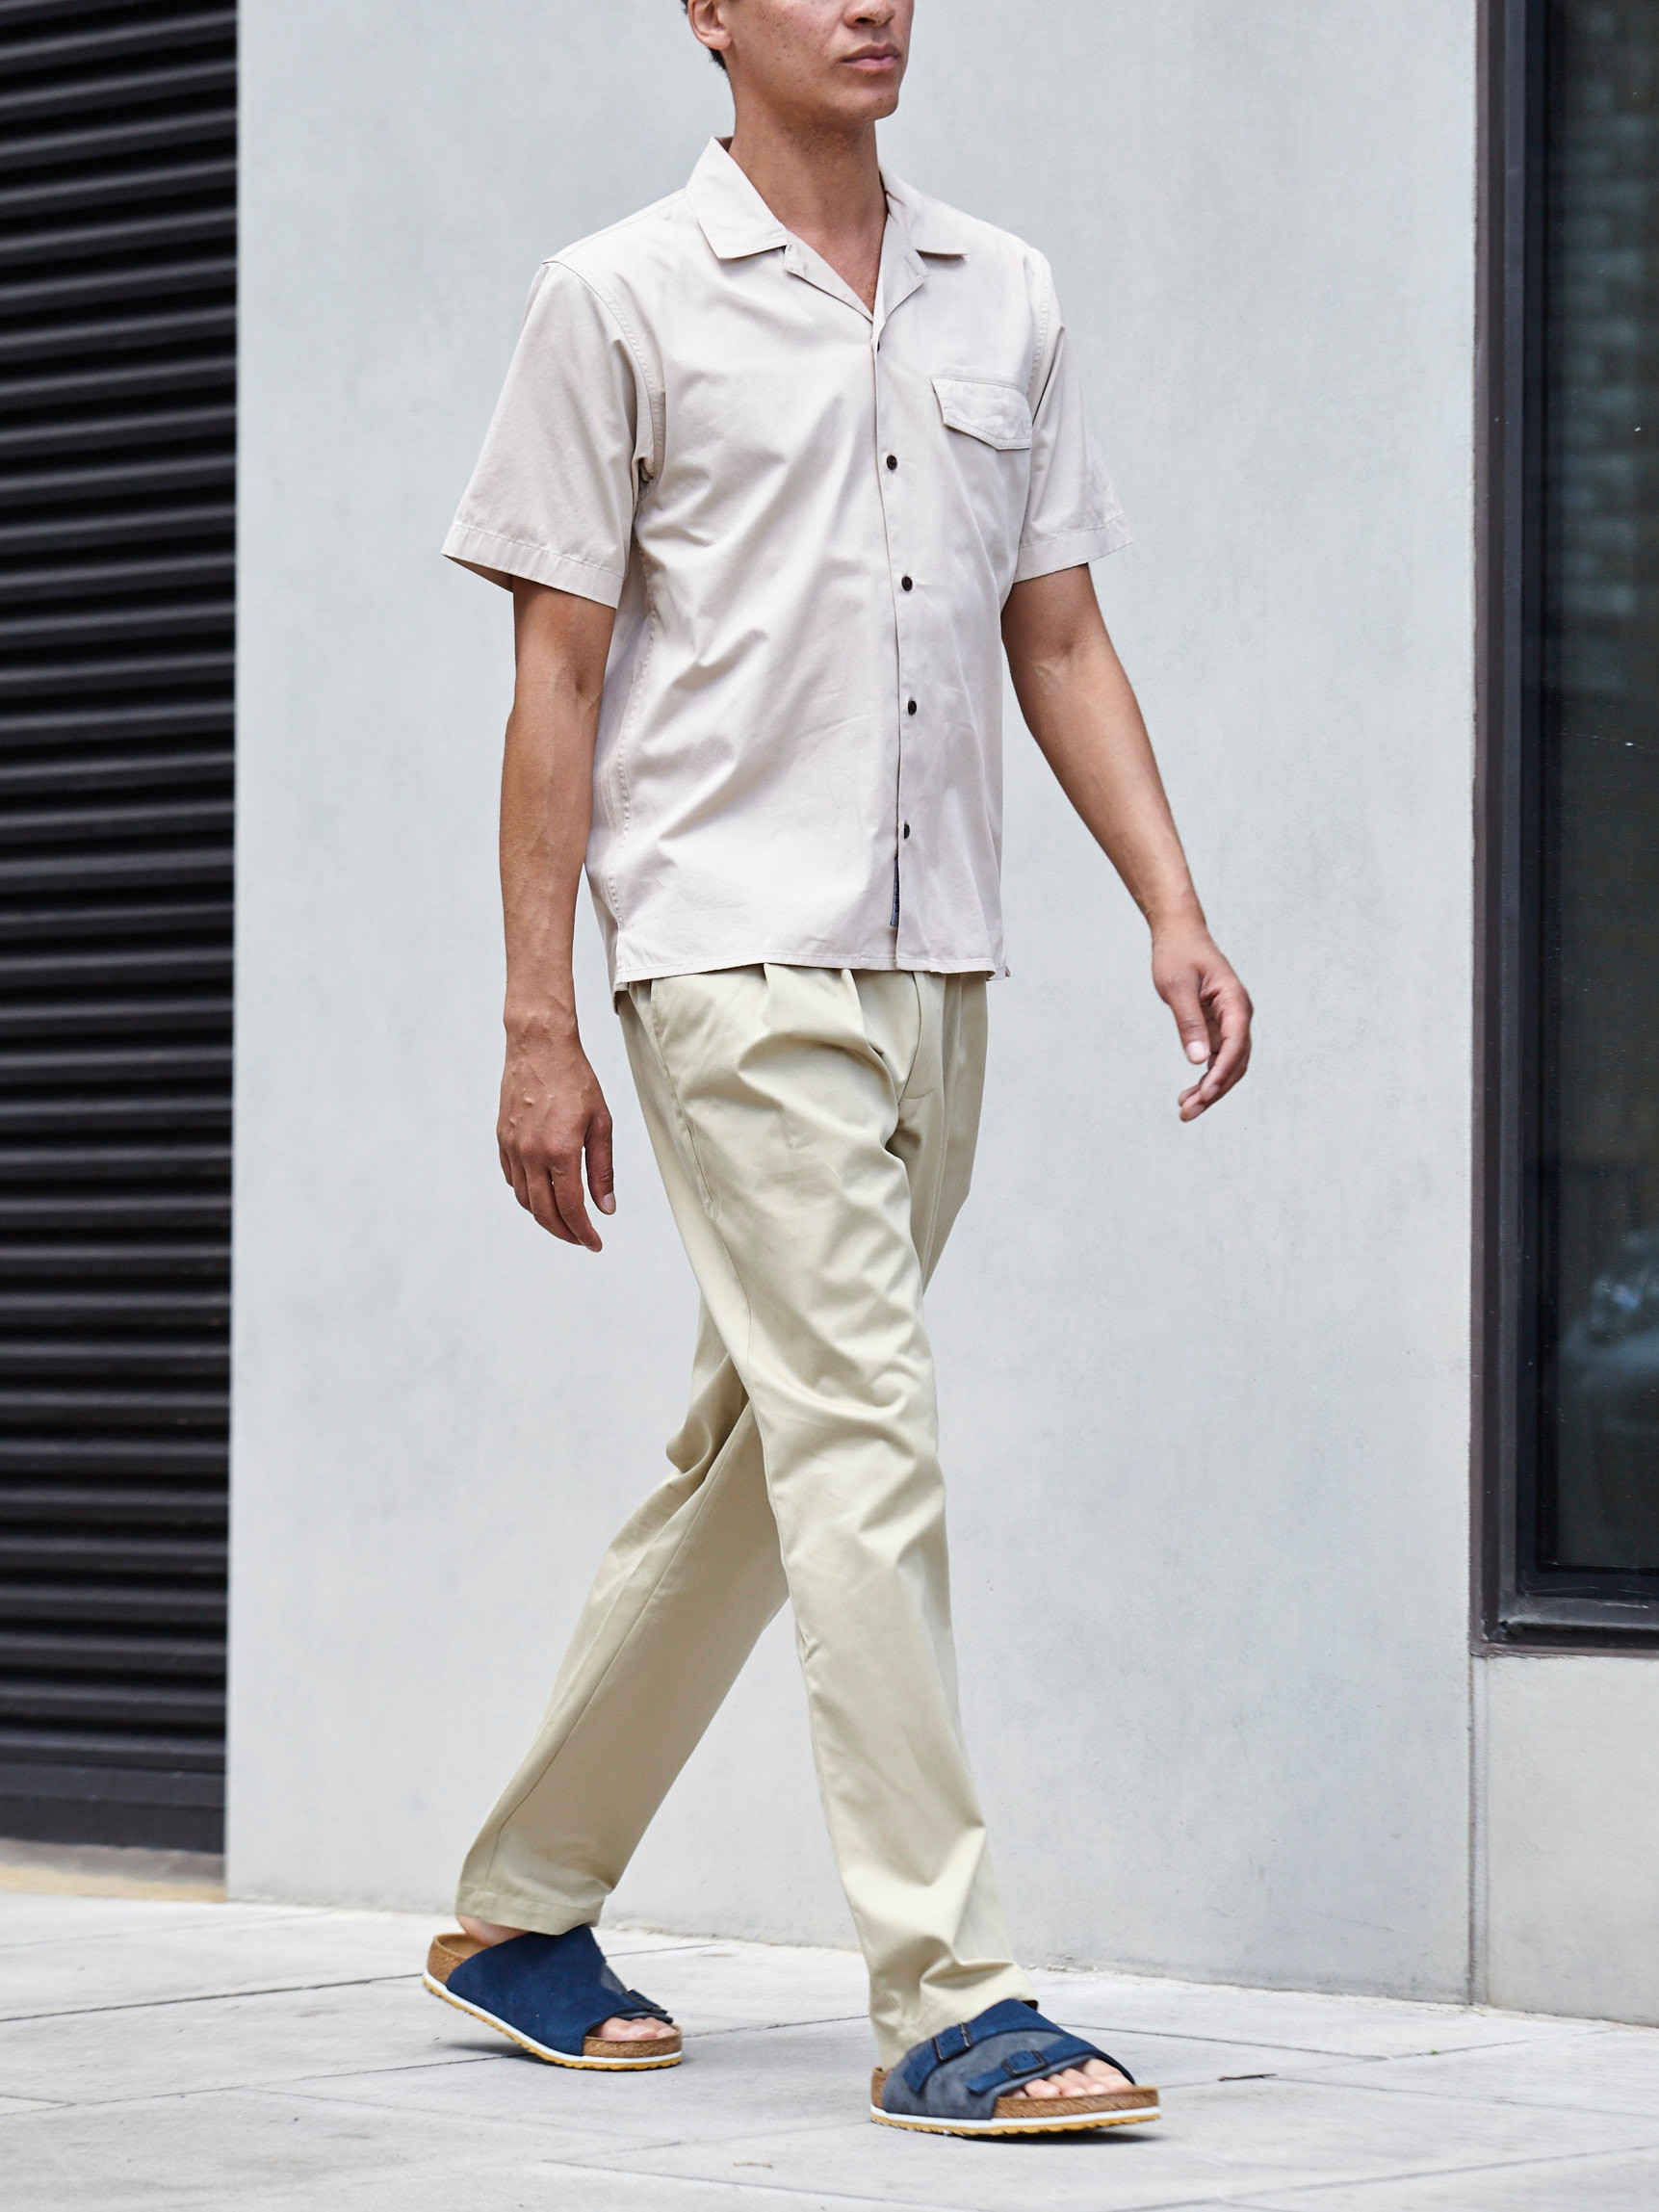 Men's outfit idea for 2021 with short-sleeved plain shirt, neutral chinos, sandals. Suitable for summer.